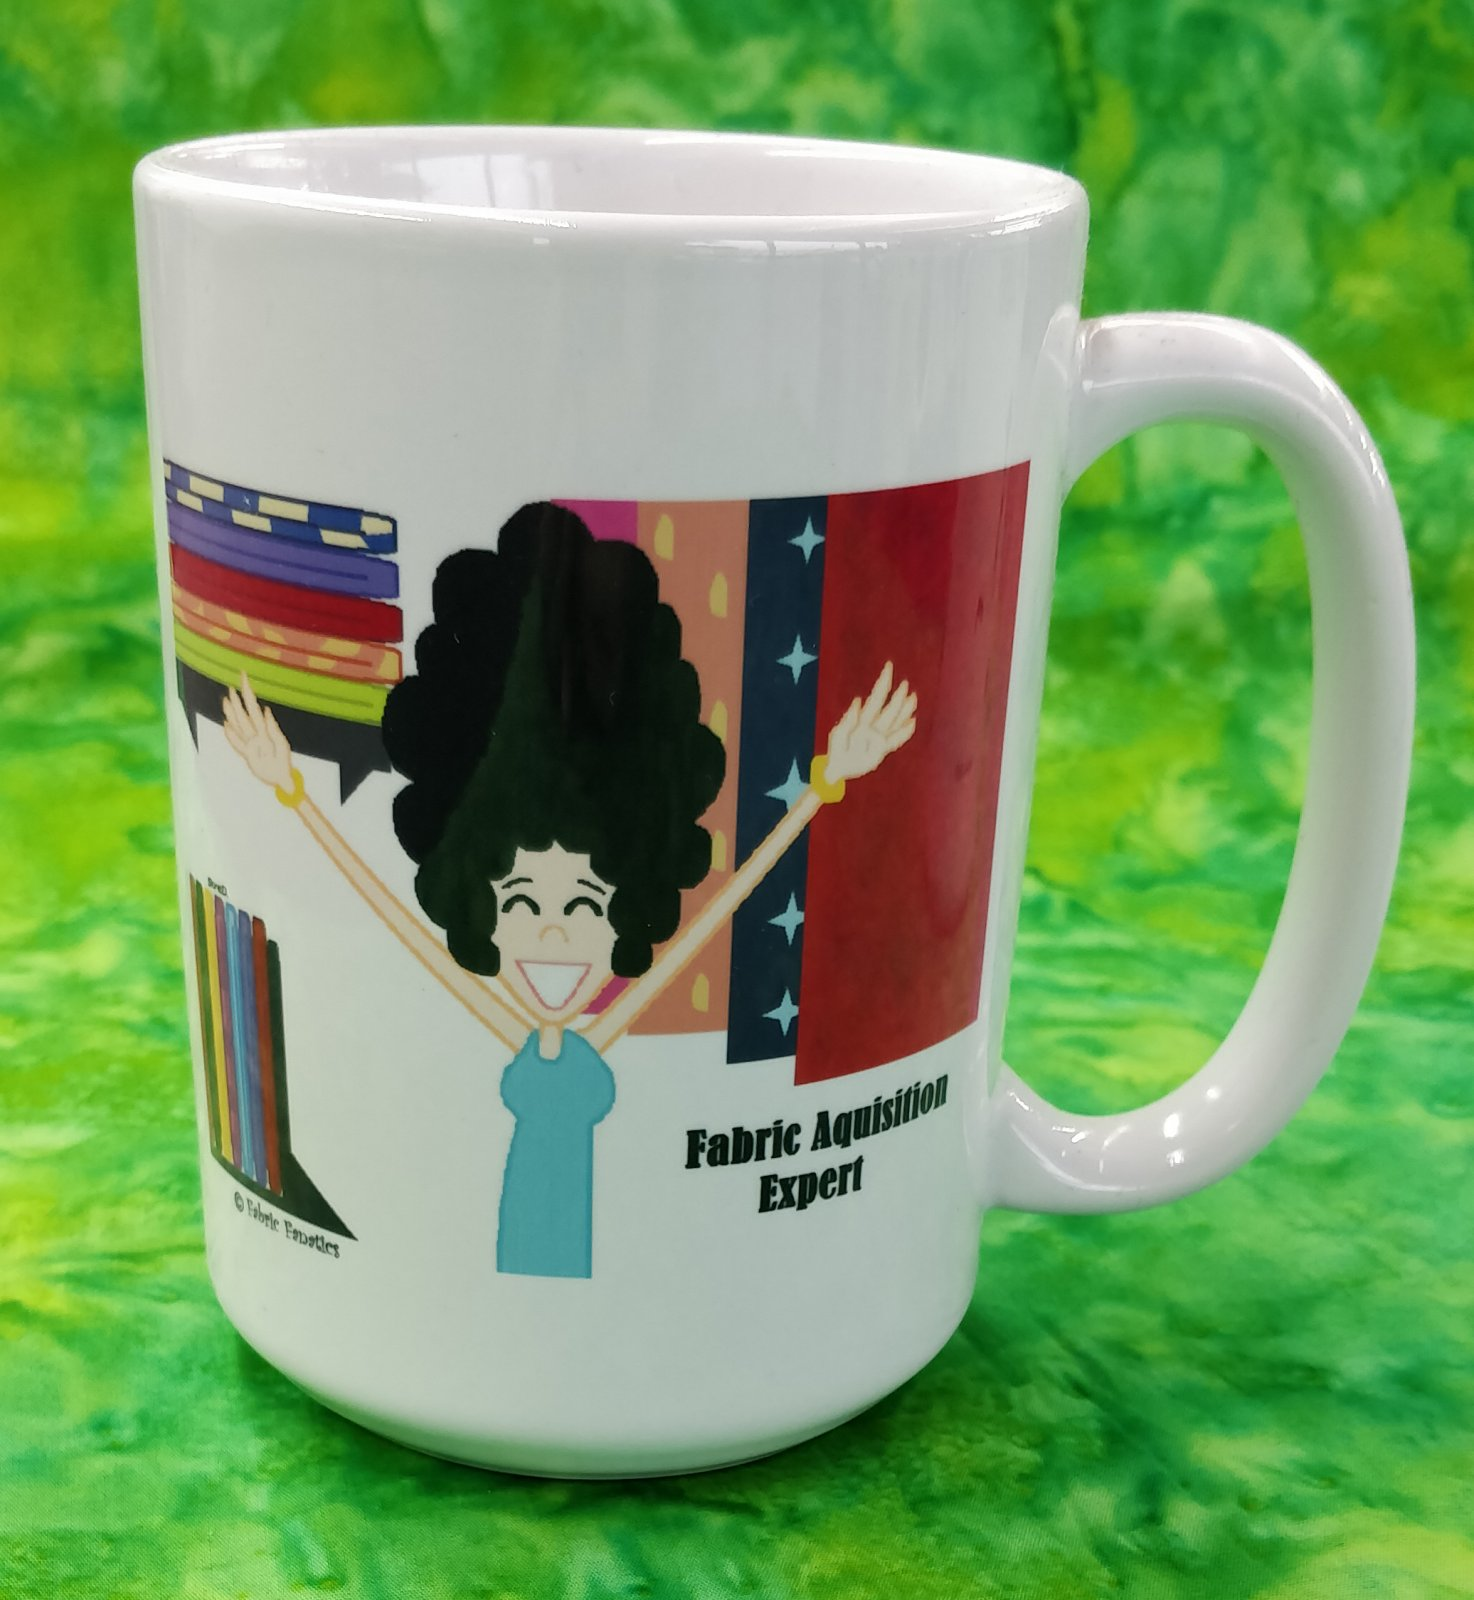 Mug - Fabric Aquisition Expert - #2 - in store or curbside